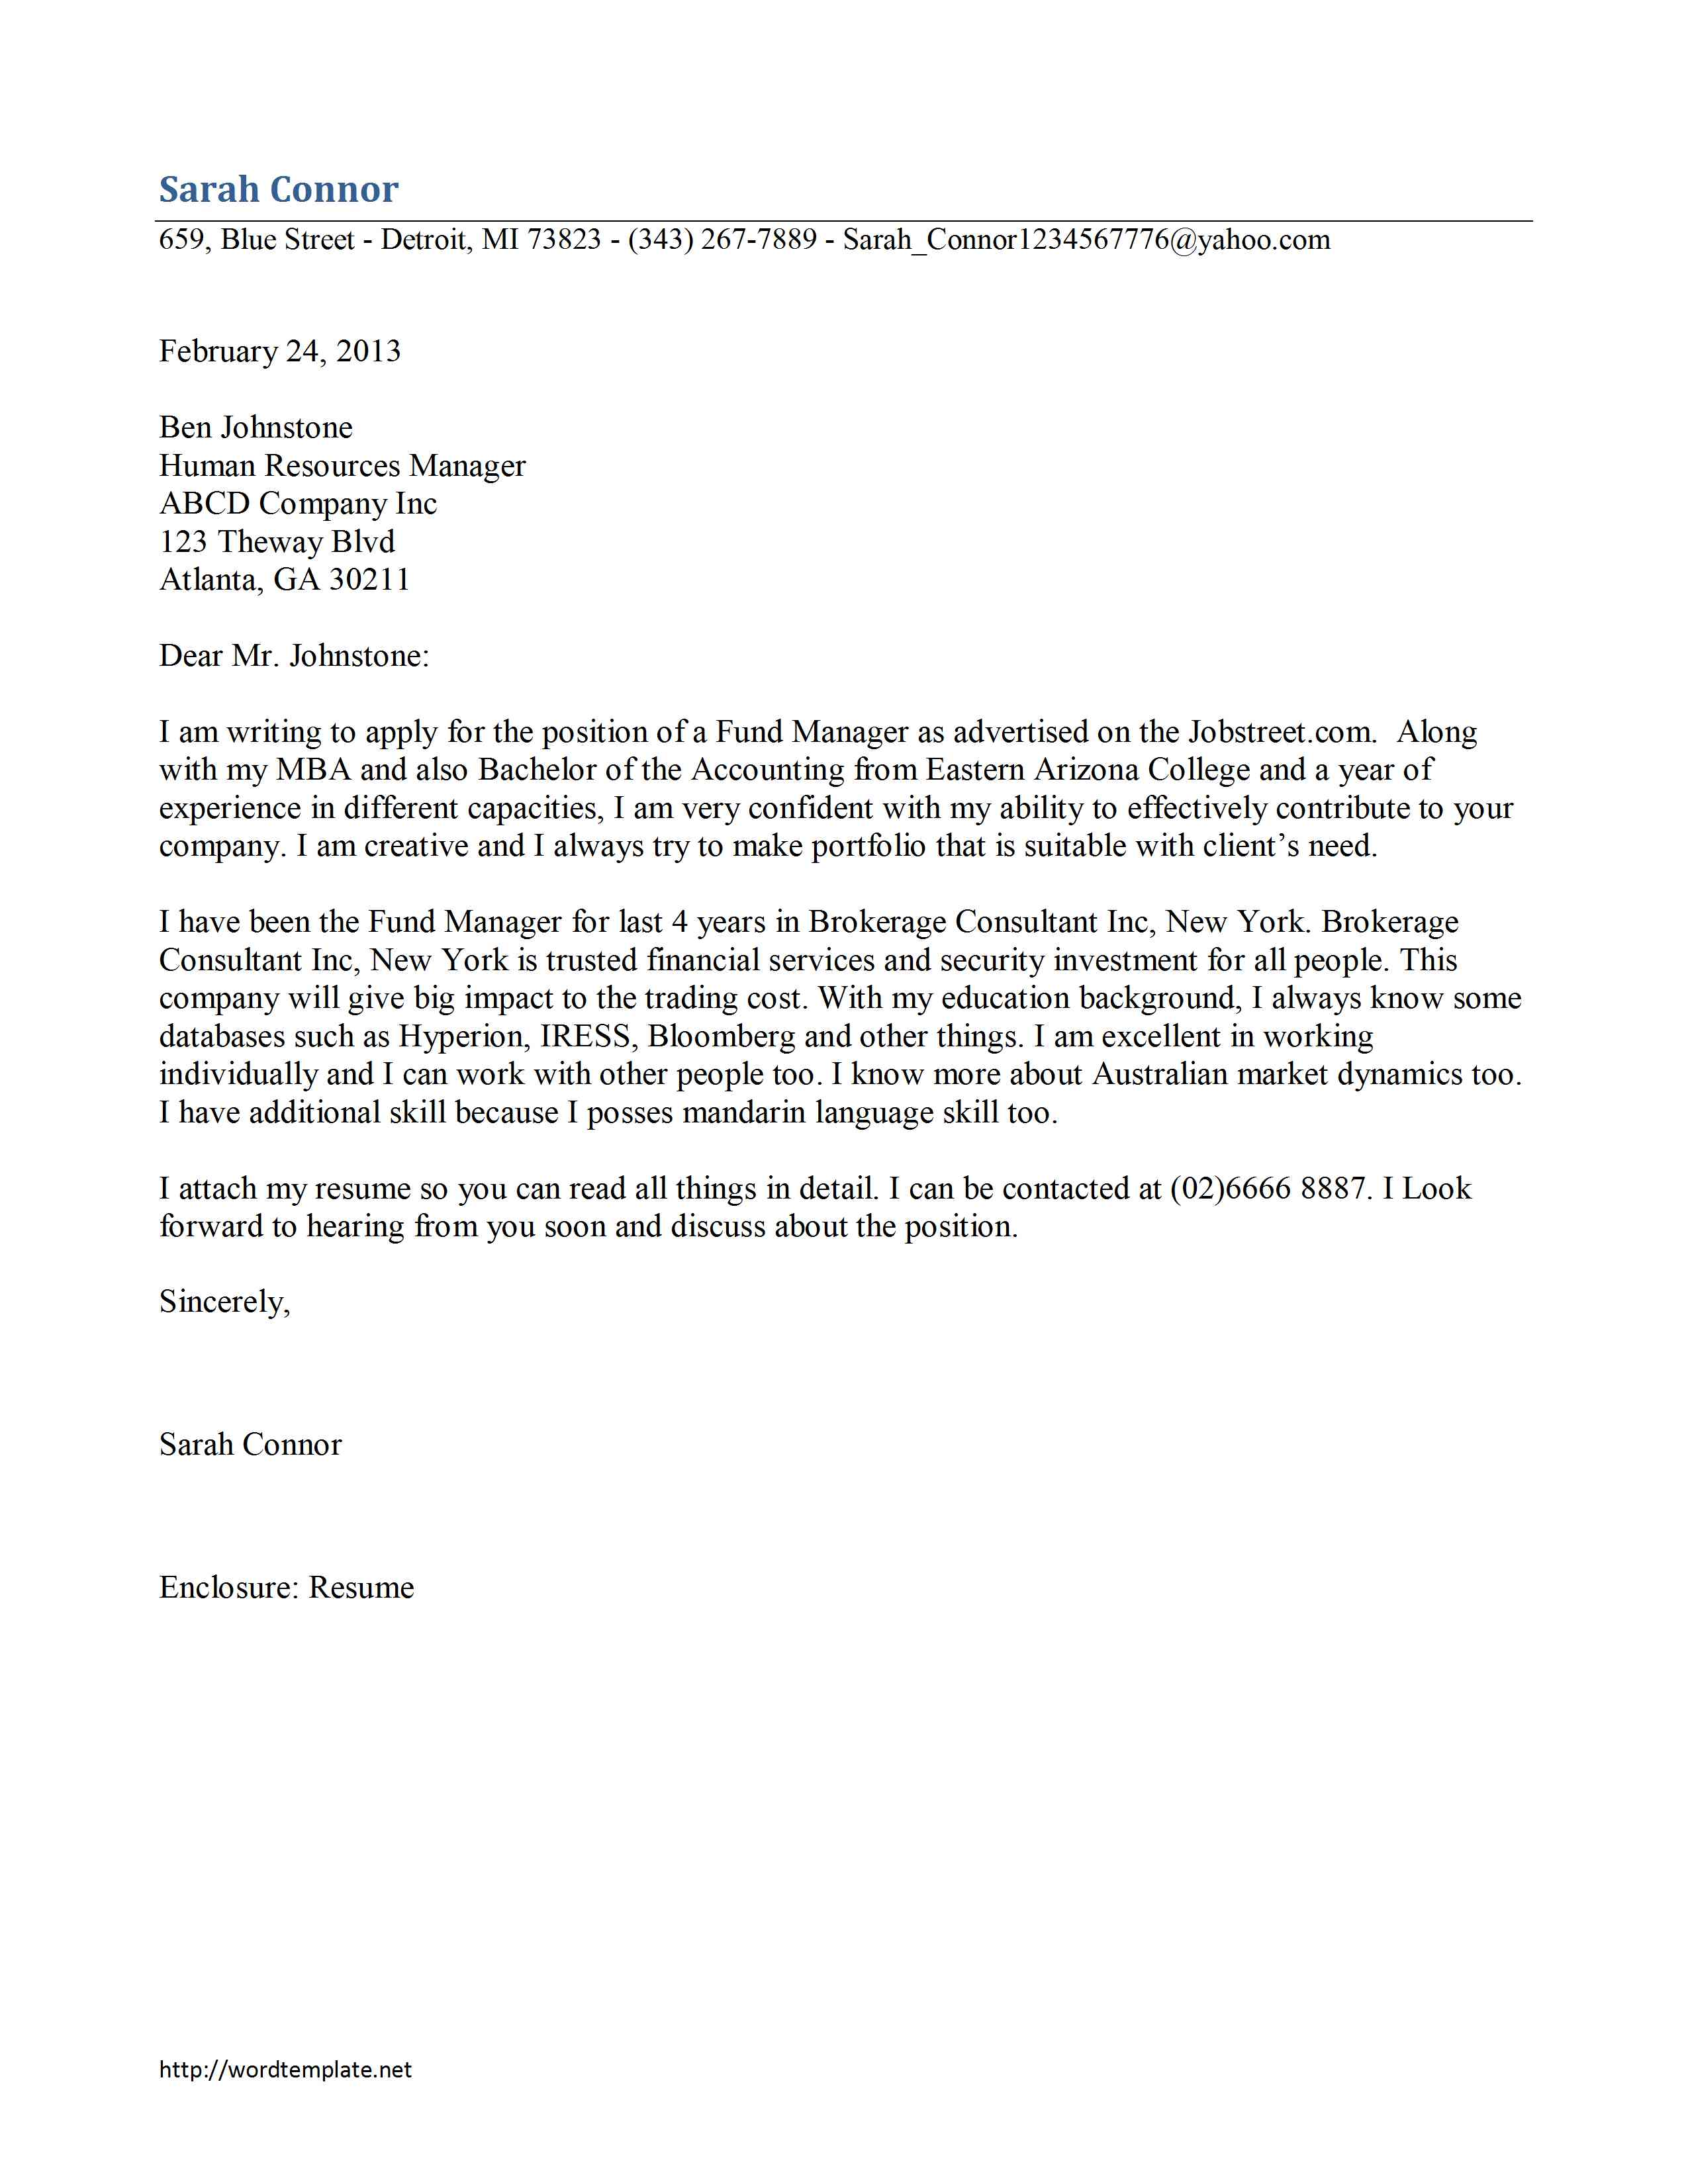 Fund Manager Cover Letter Template  Free Microsoft Word Templates